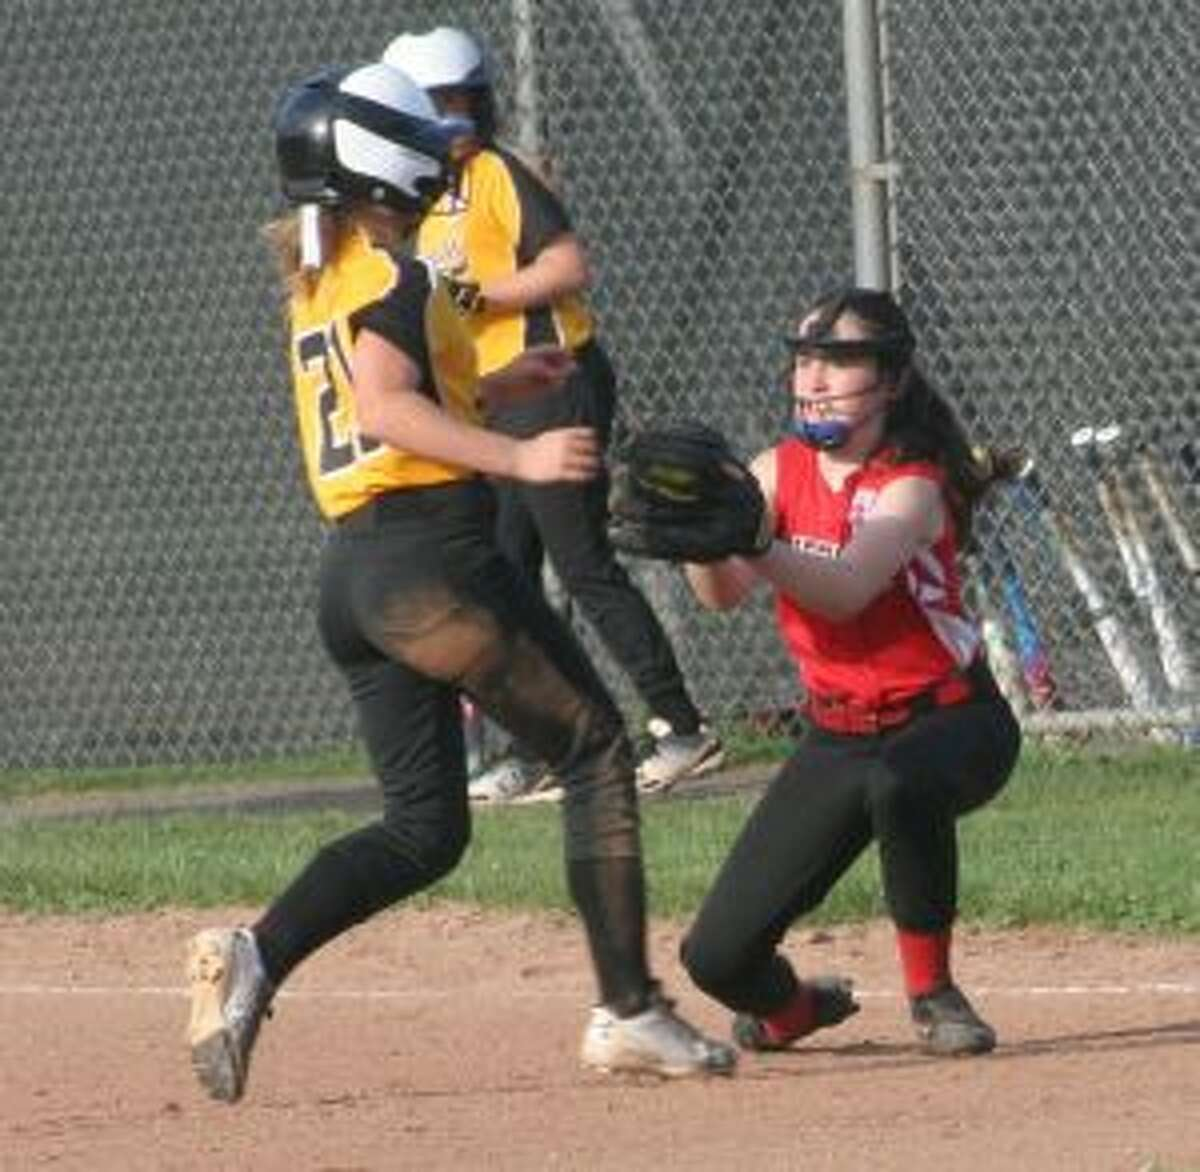 Fairfield's Paige O'Neill tags out Trumbull's Brianna Buda.